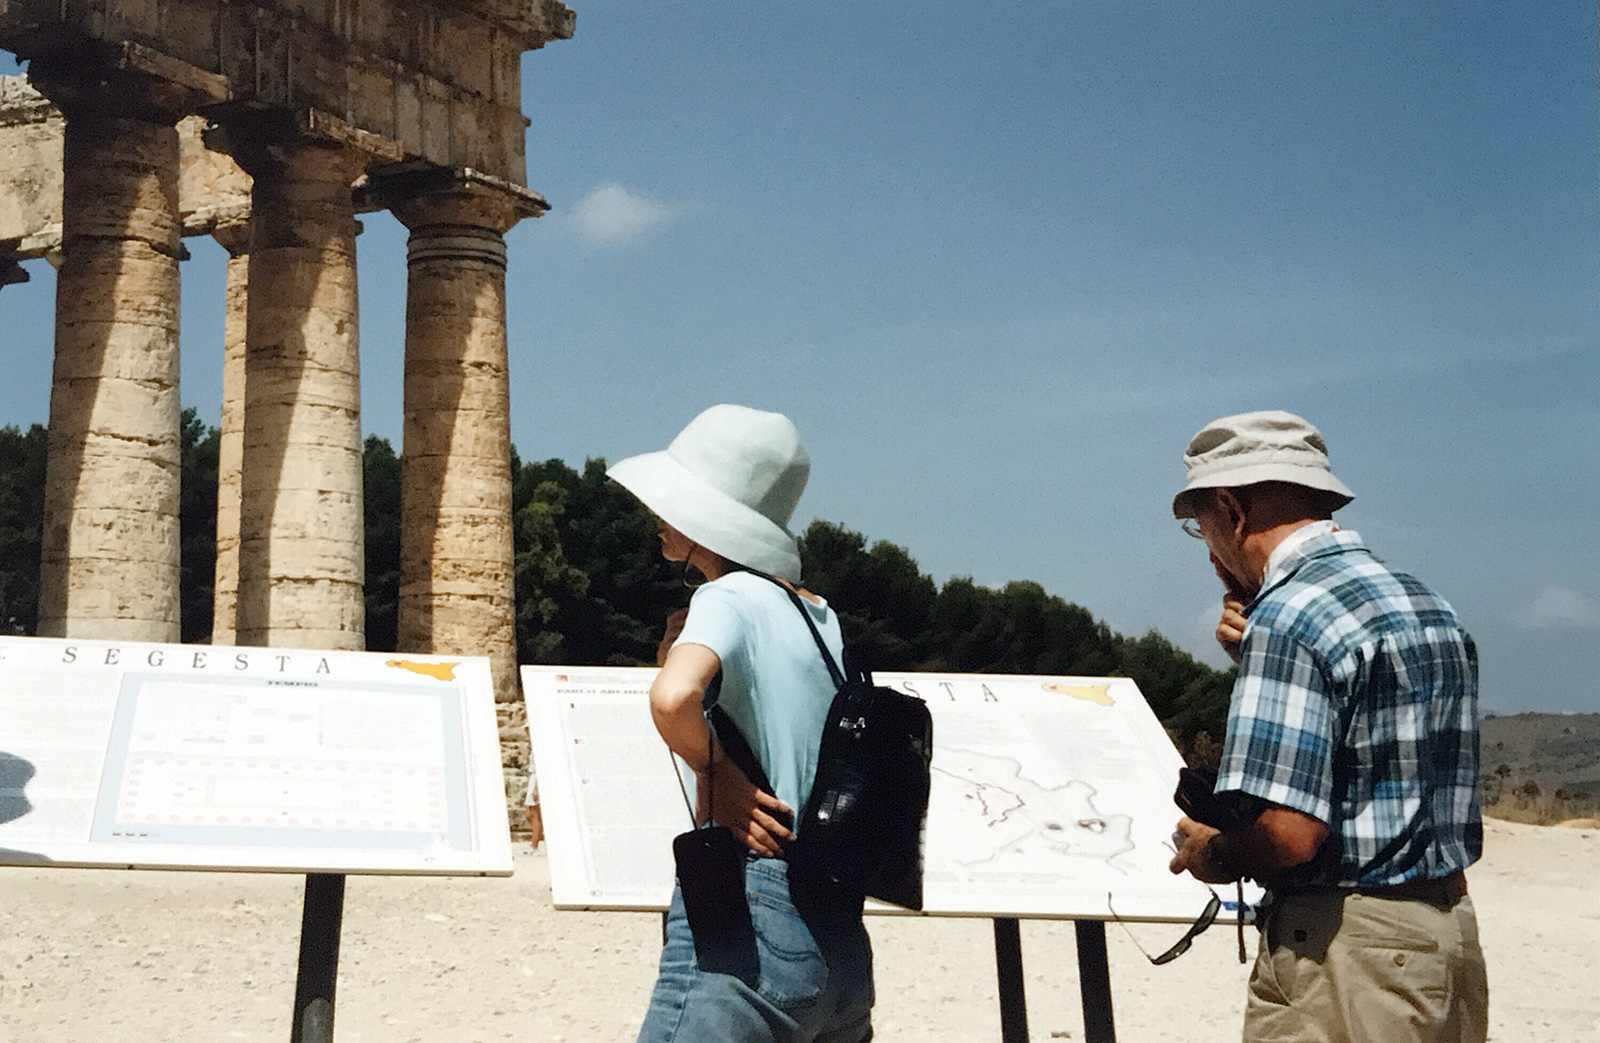 At the ruins in Segesta, Sicily, 2002. Photograph by Tanya Clarke